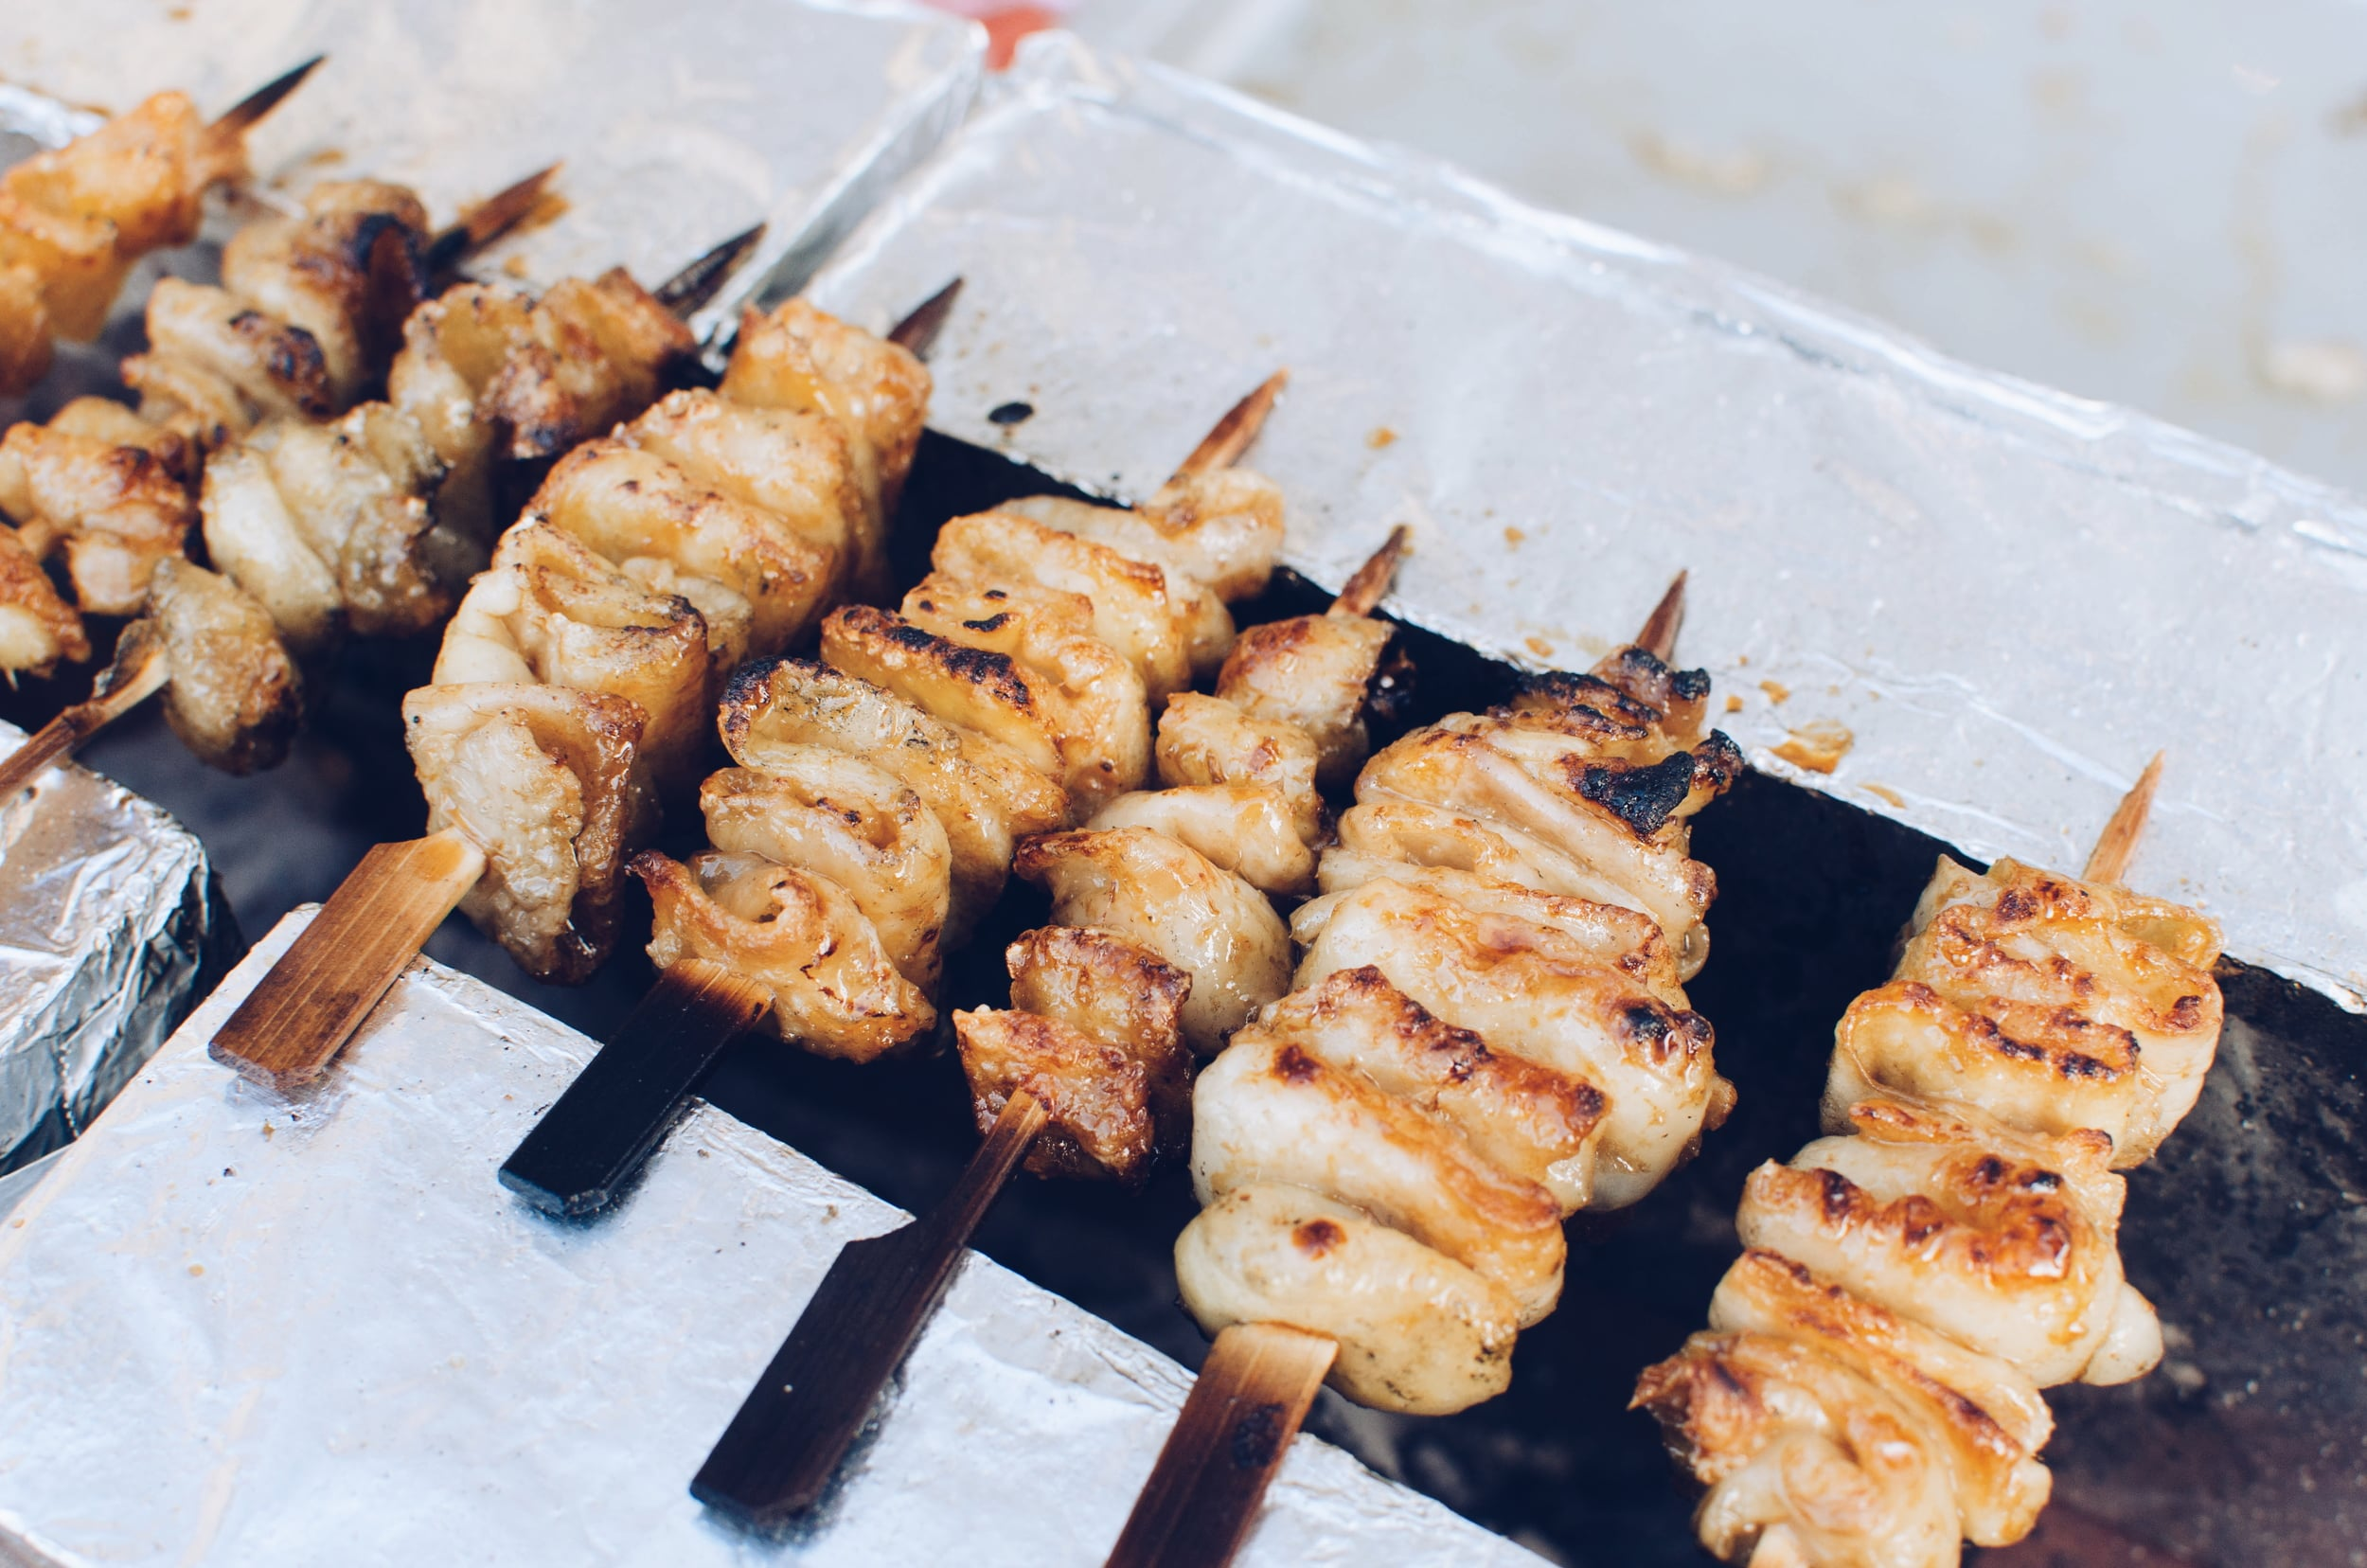 chicken skin skewers - very hard to cook but delicious.